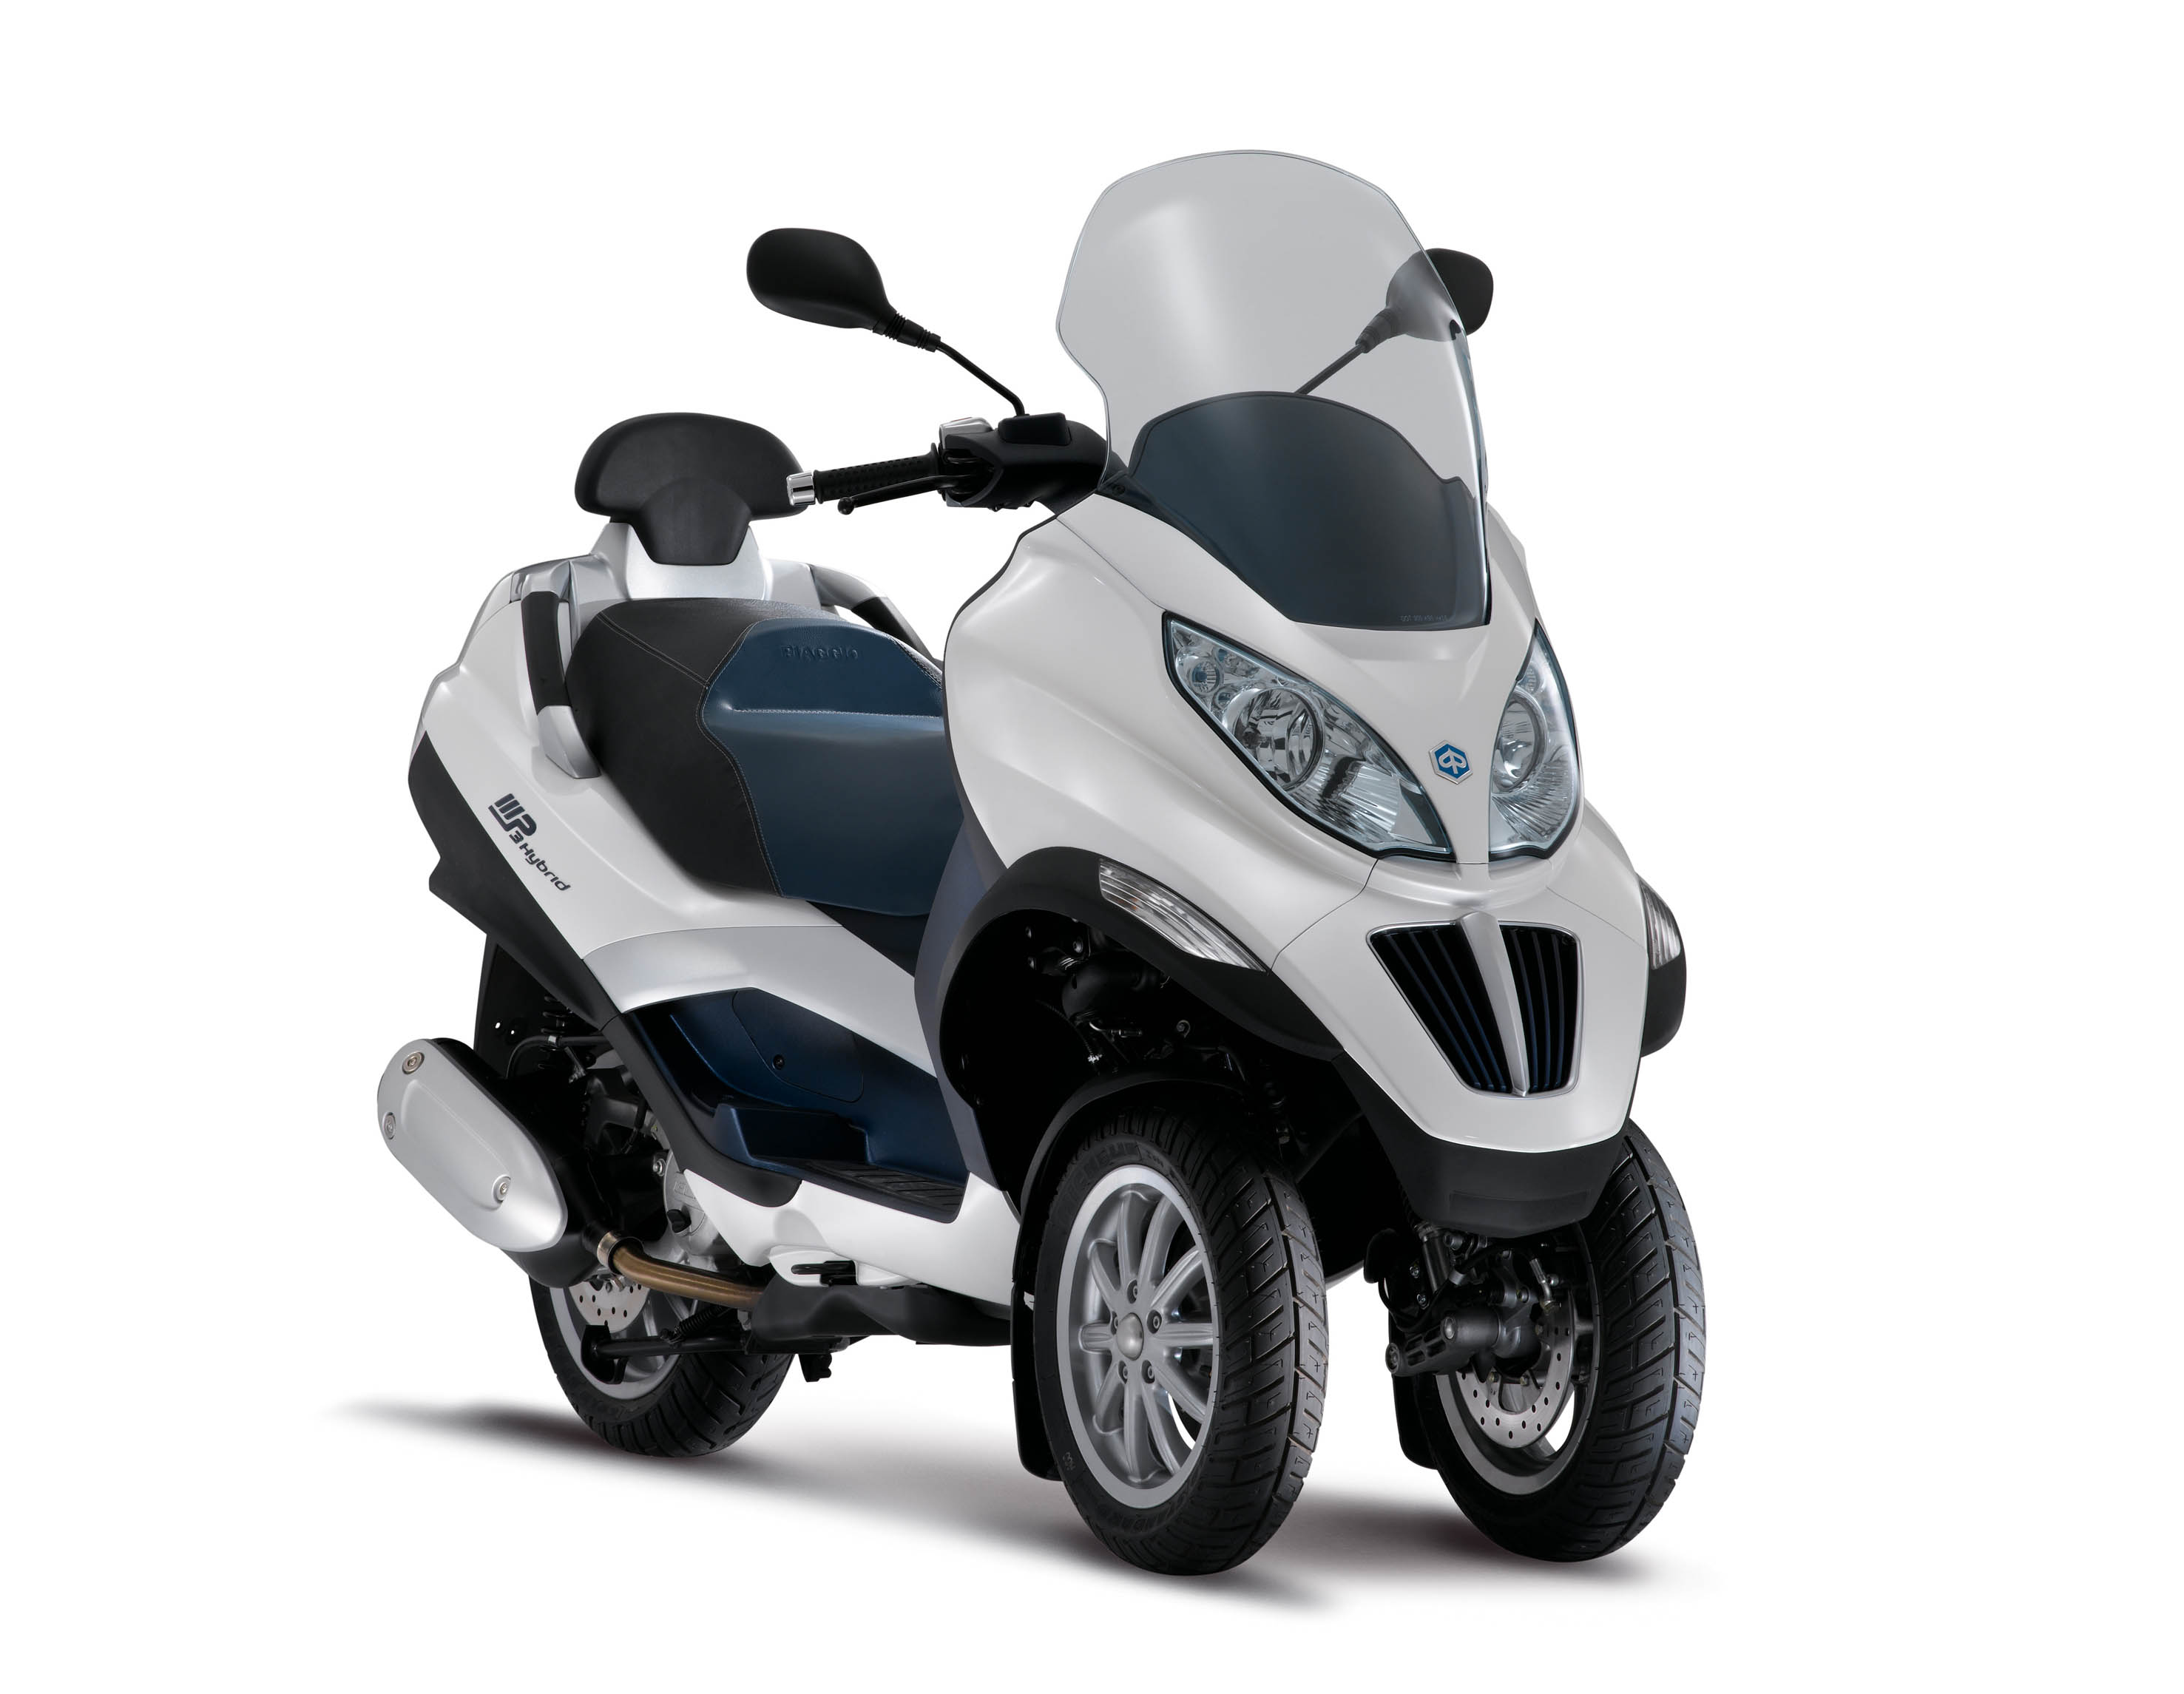 piaggio imports 3 wheeler 125cc mp3 scooter for r d. Black Bedroom Furniture Sets. Home Design Ideas